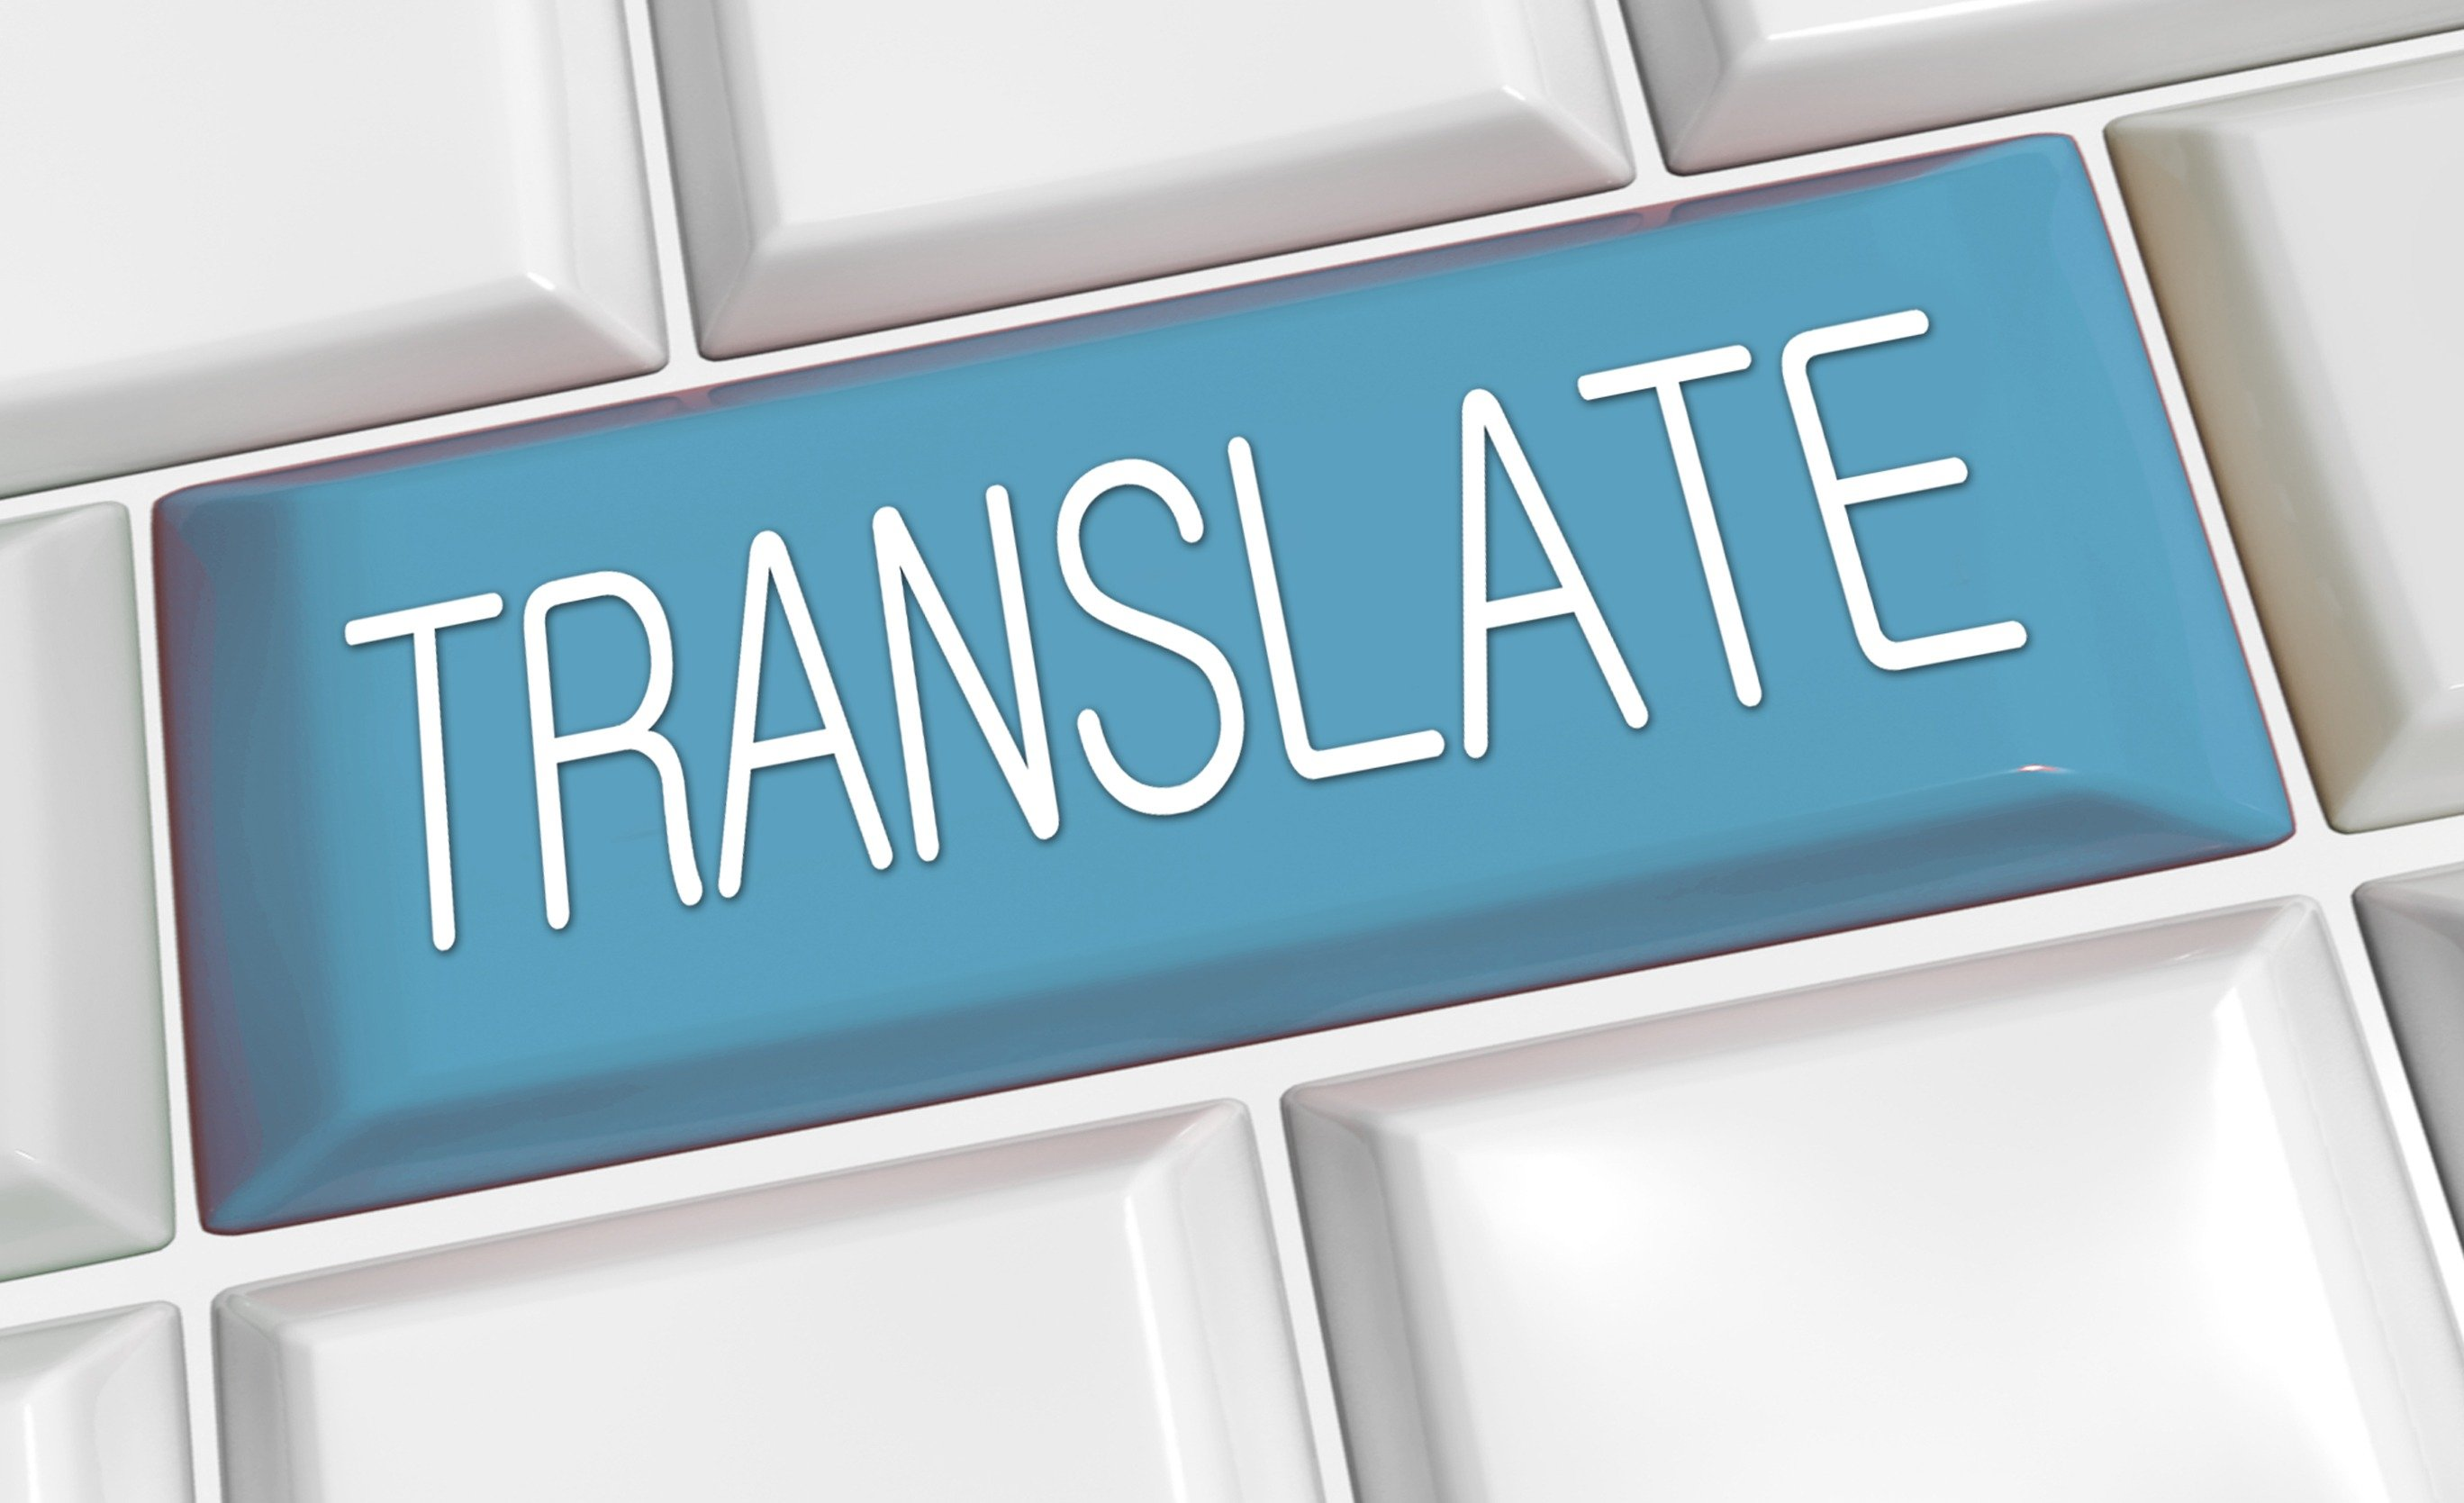 I Will Translate English Into French or Vice Varsa